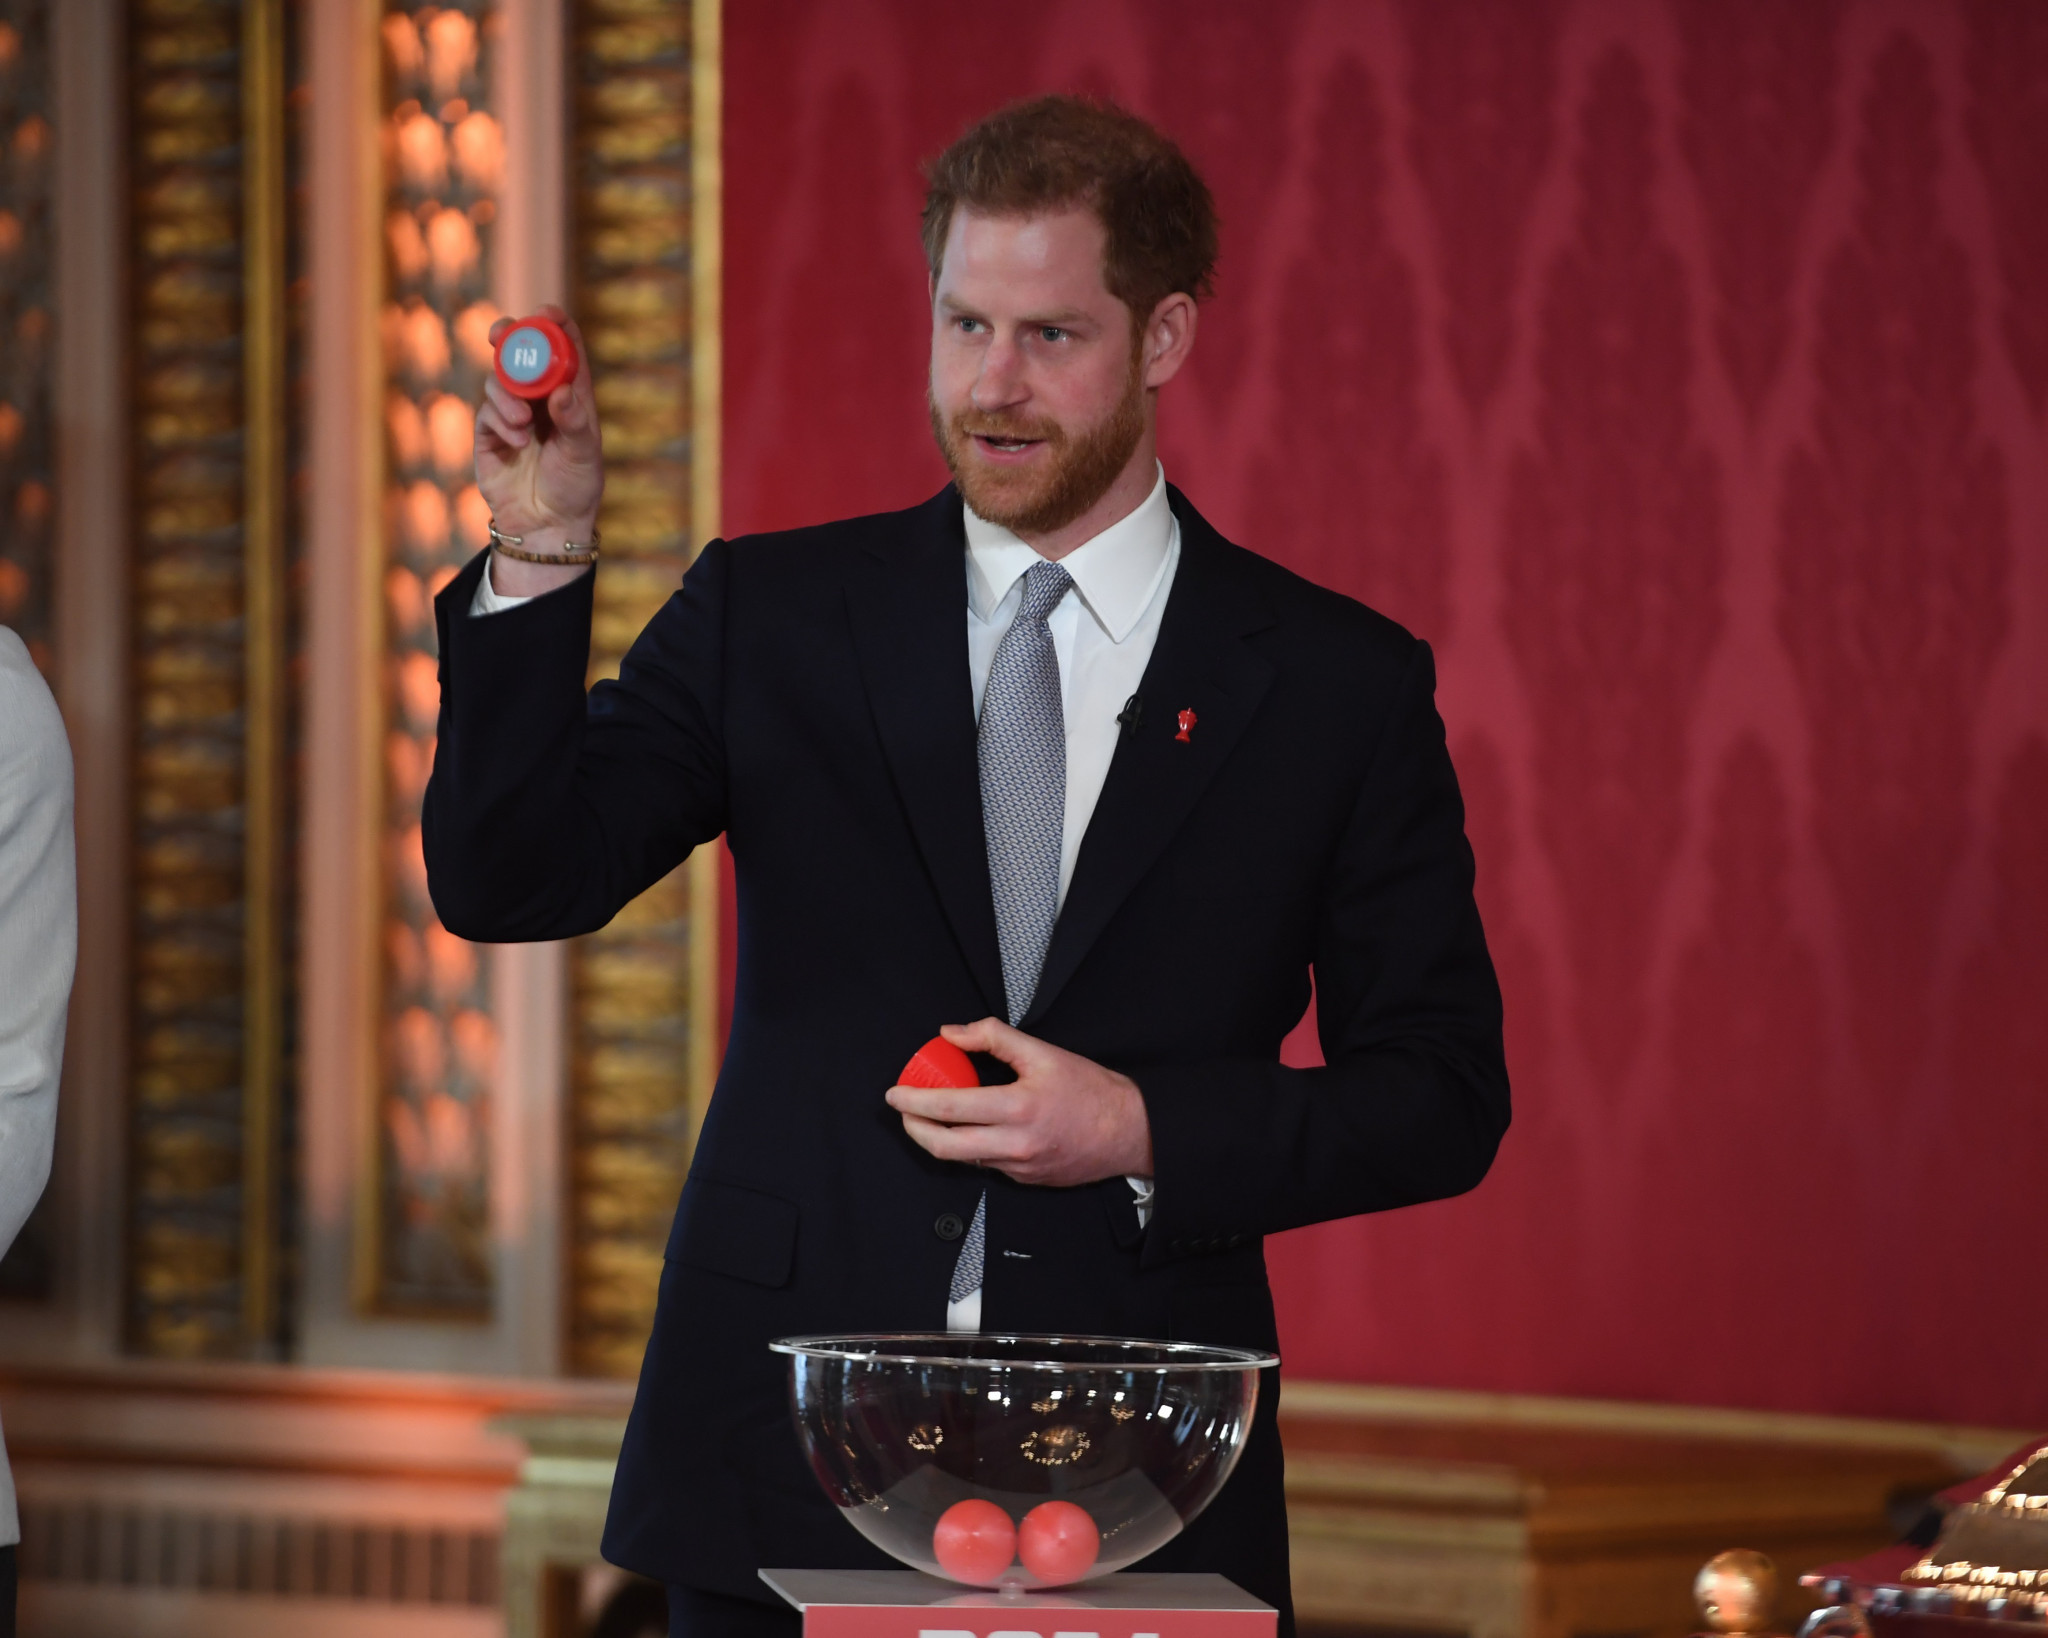 Prince Harry attends draw for 2021 Rugby League World Cup in first public appearance since shock announcement